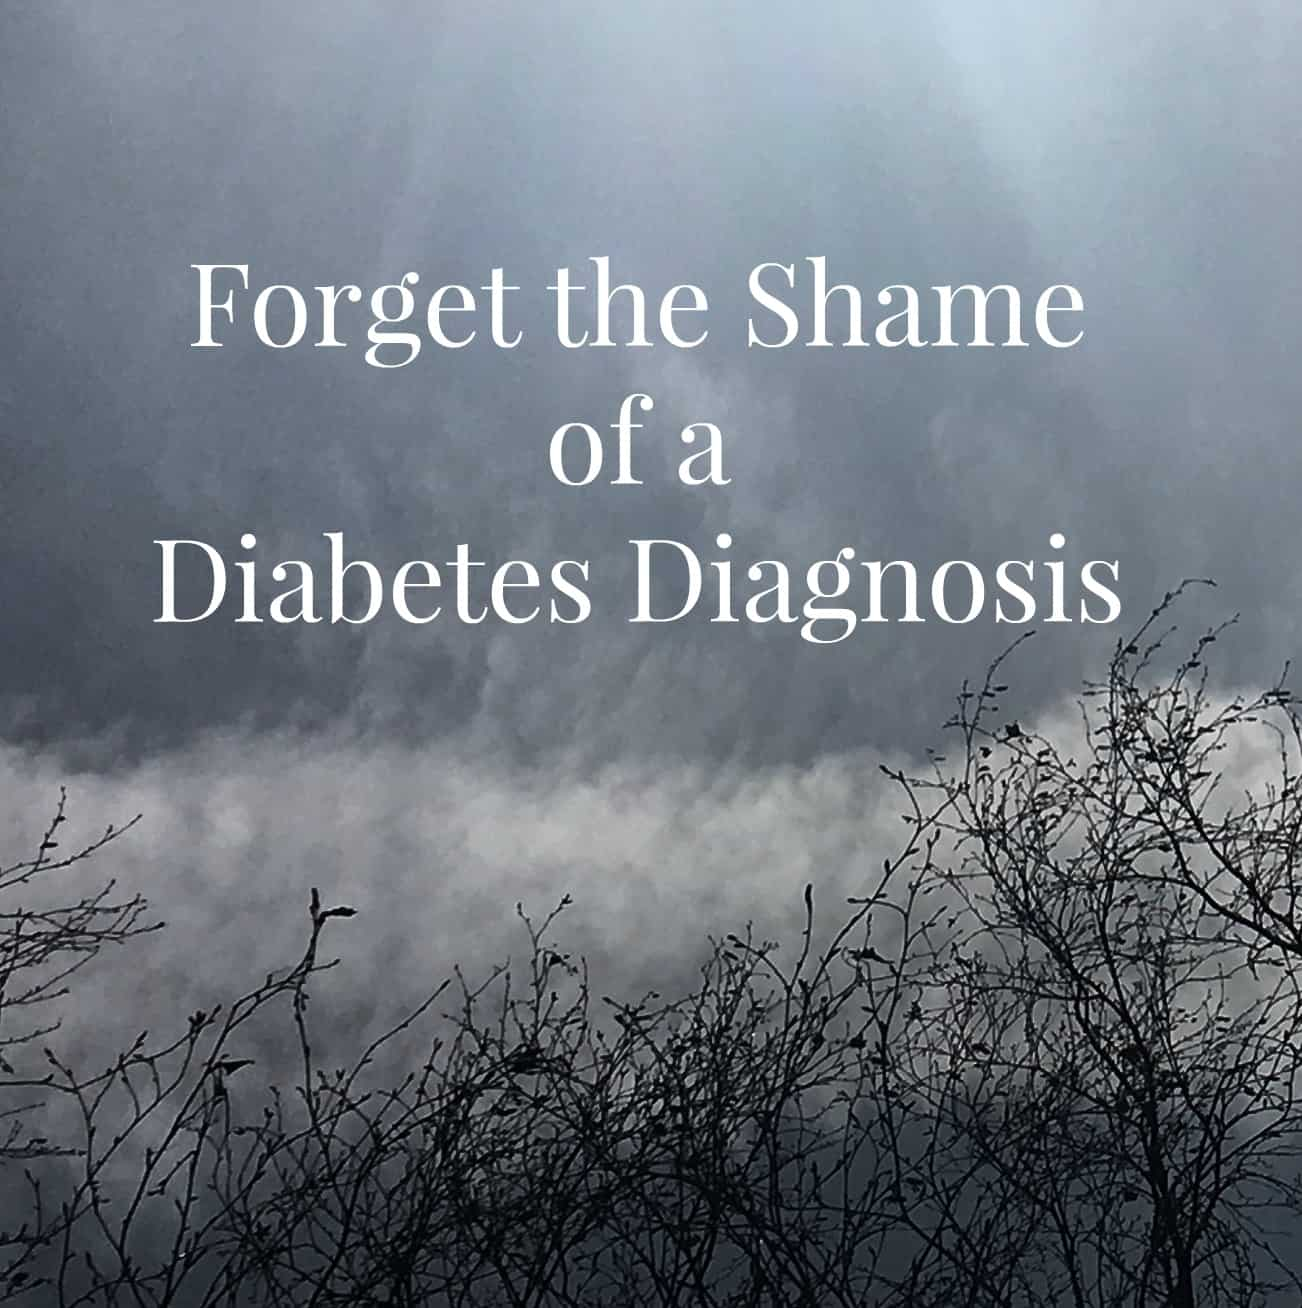 Forget the Shame of a Diabetes Diagnosis